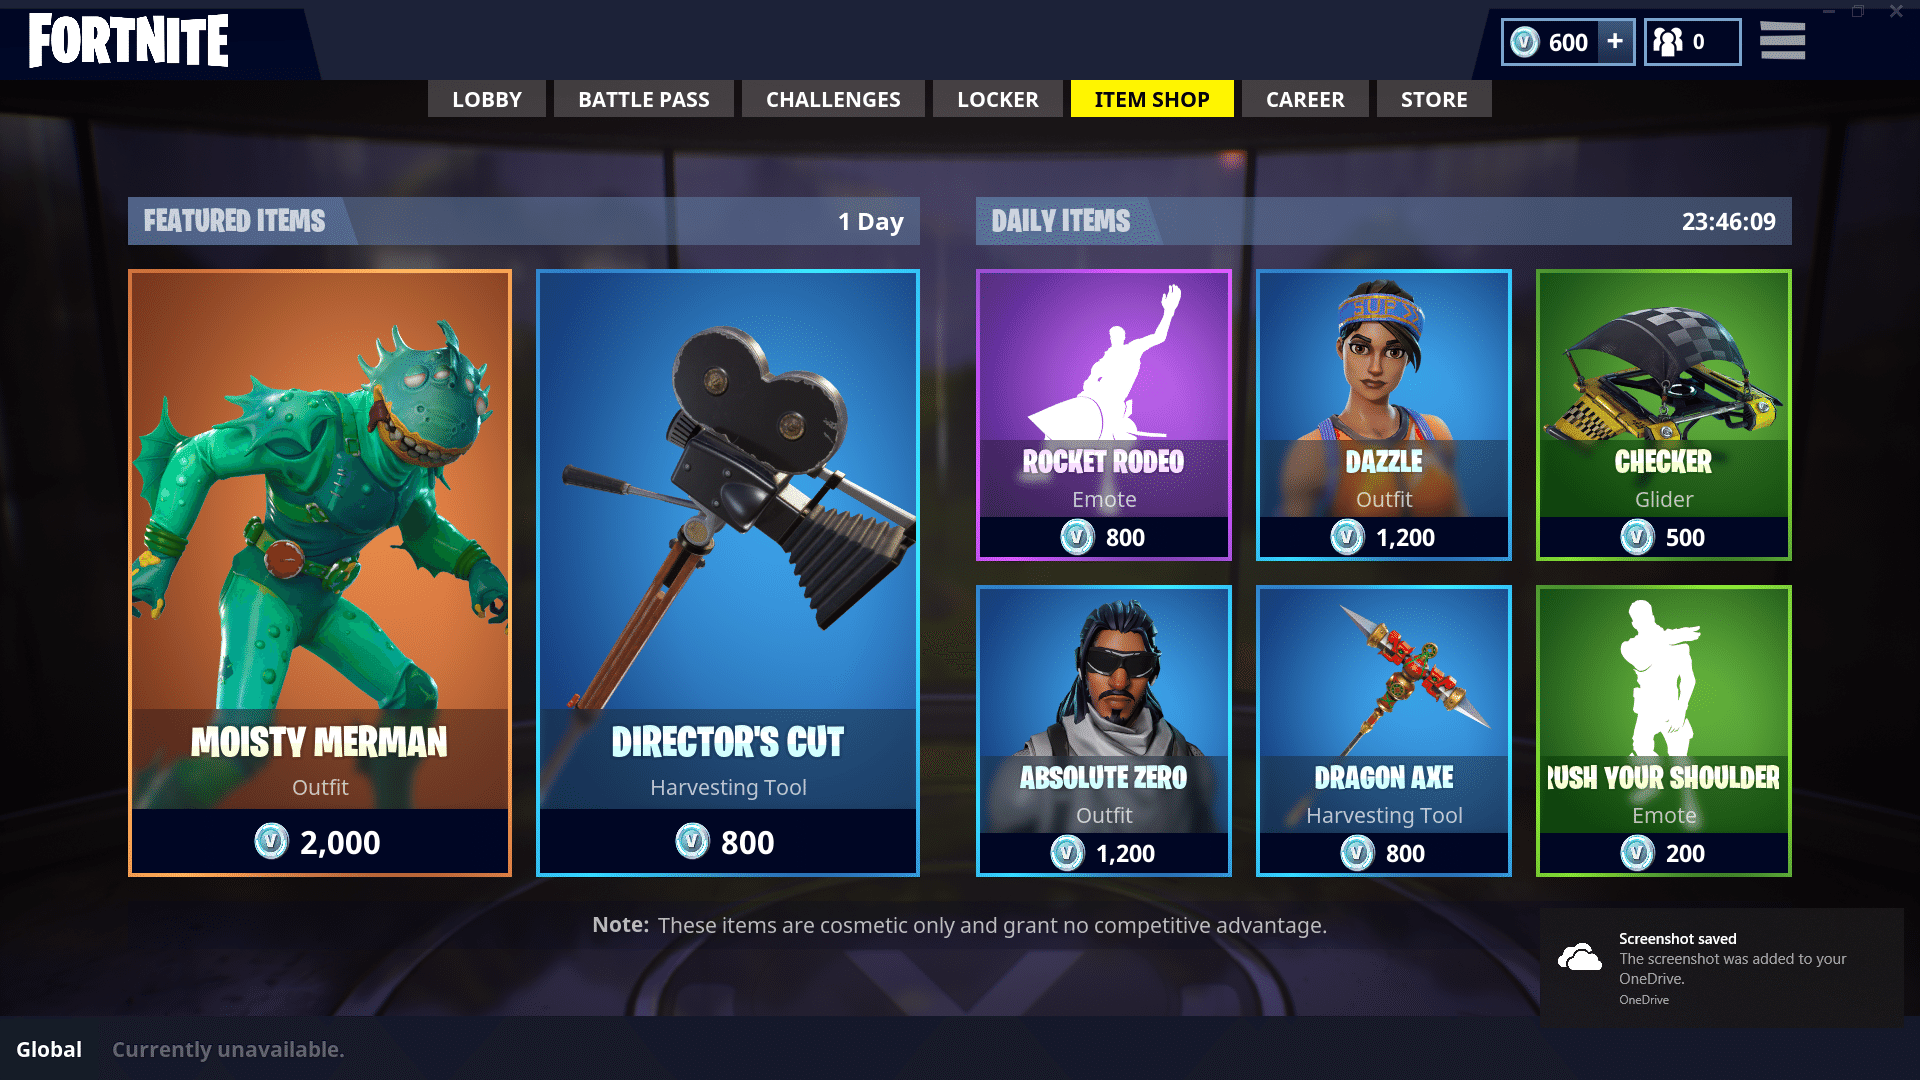 Fortnite Moisty Merman Added to Item Shop Be The Creature From 1920x1080